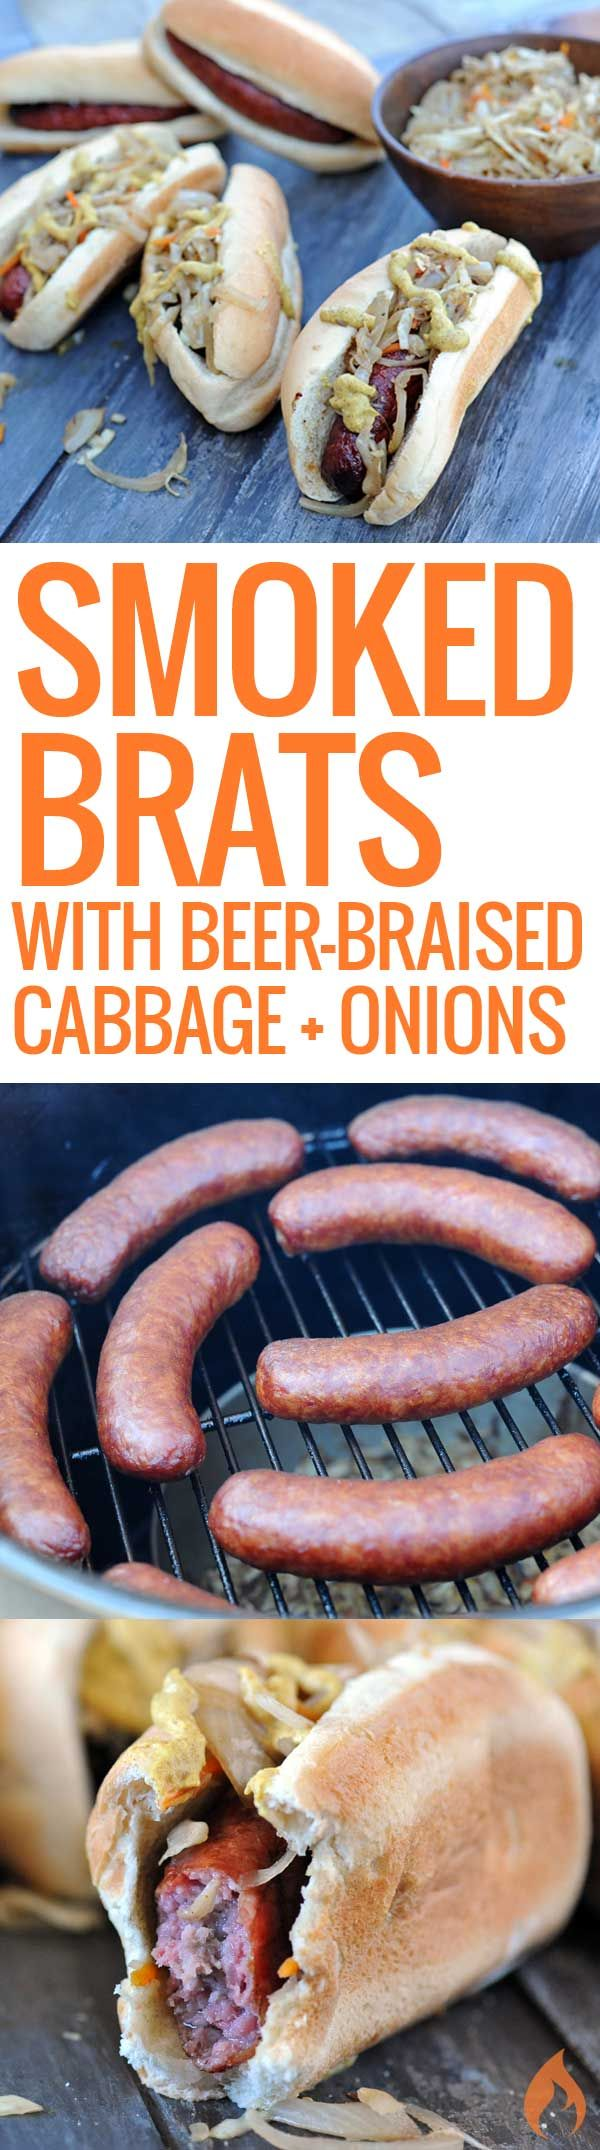 Every tailgate party needs a cooker full of smoked bratwursts. These are made even better with smoked beer-braised cabbage and onions.